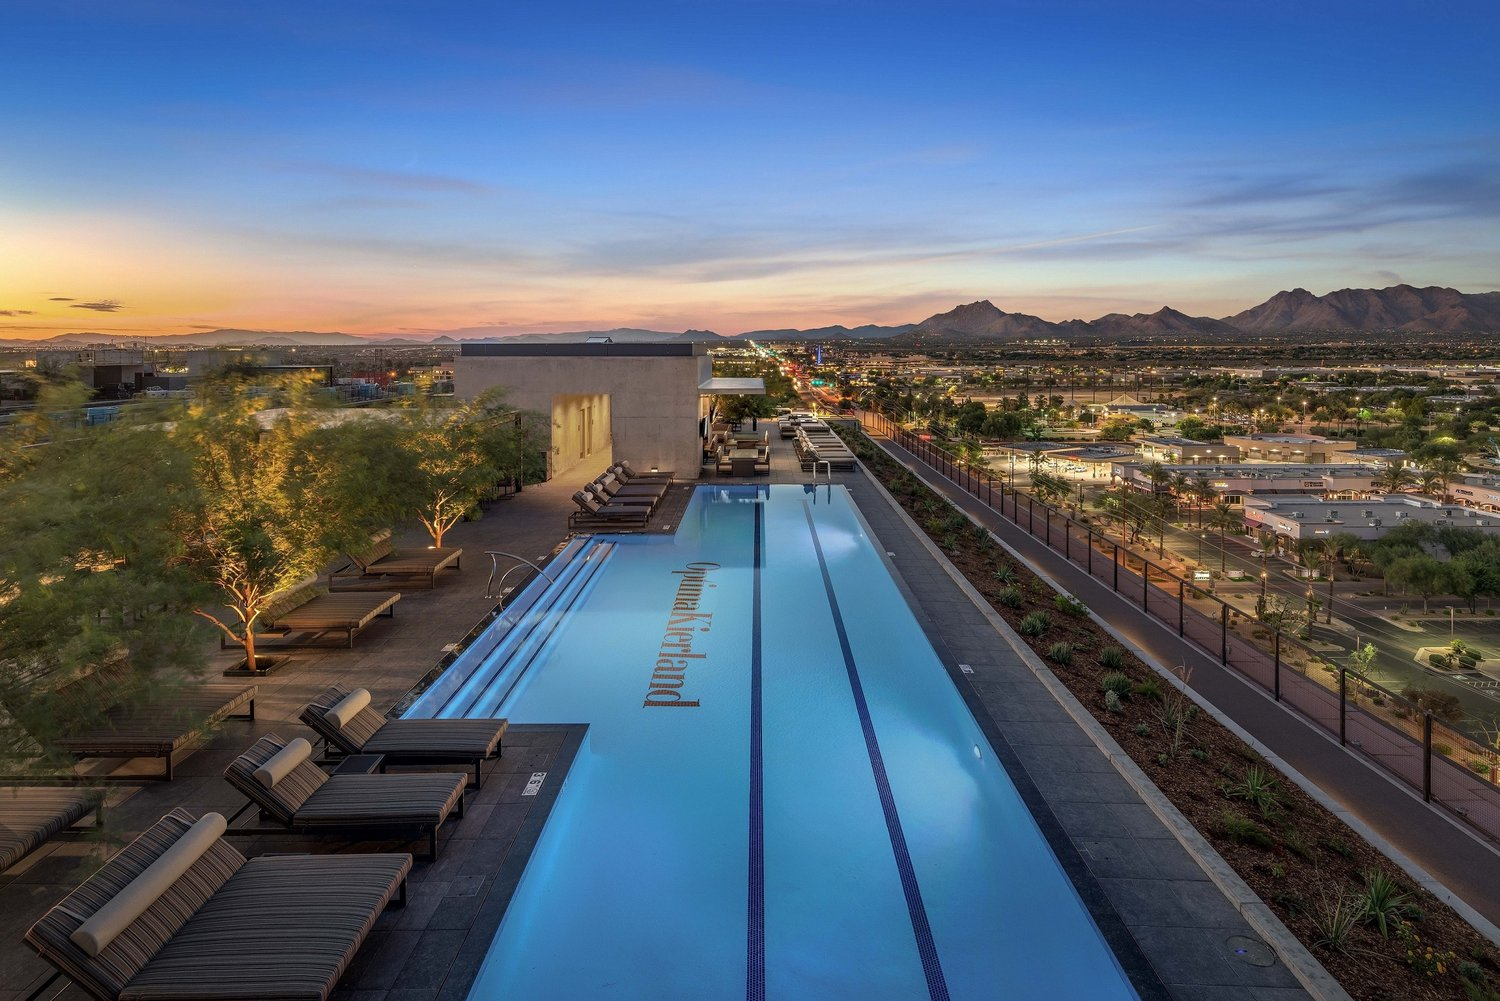 7180 Optima Kierland's Sky Deck includes a heated lap pool with built-in seating areas, spa and a cold-plunge pool.